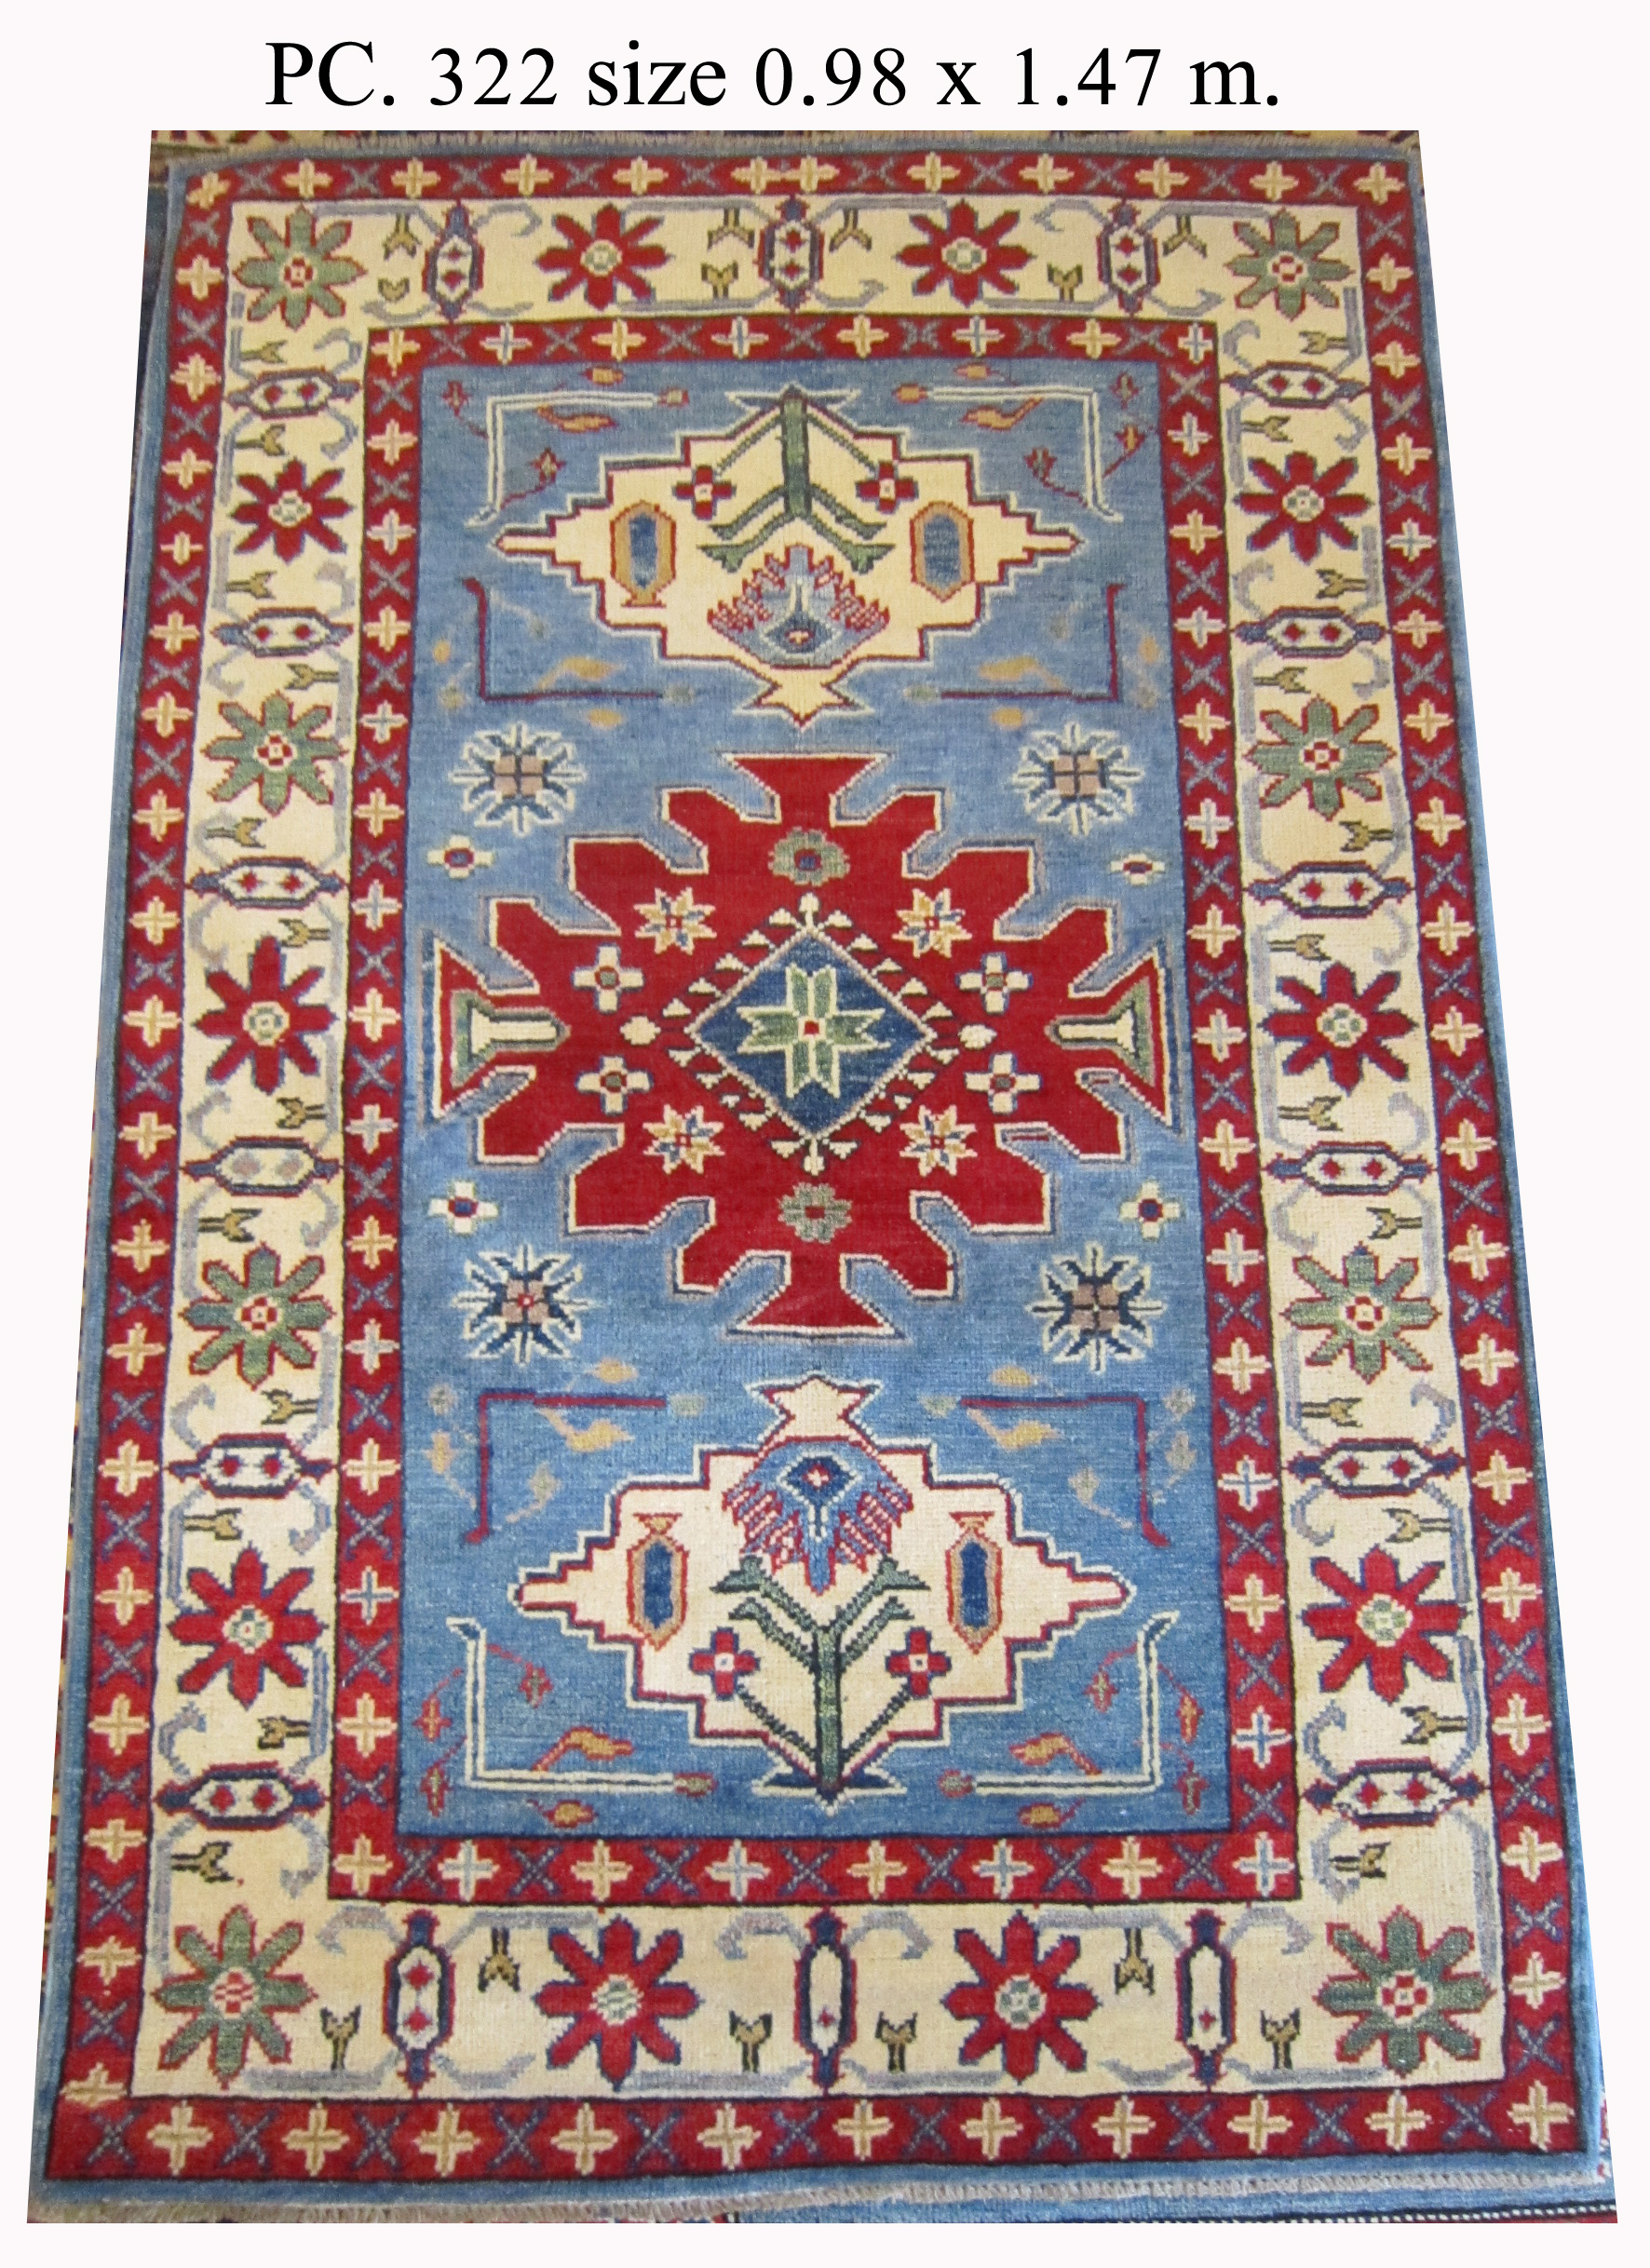 Gallery persian carpets bangkok thailand for Couchtisch 1 00 x 1 00